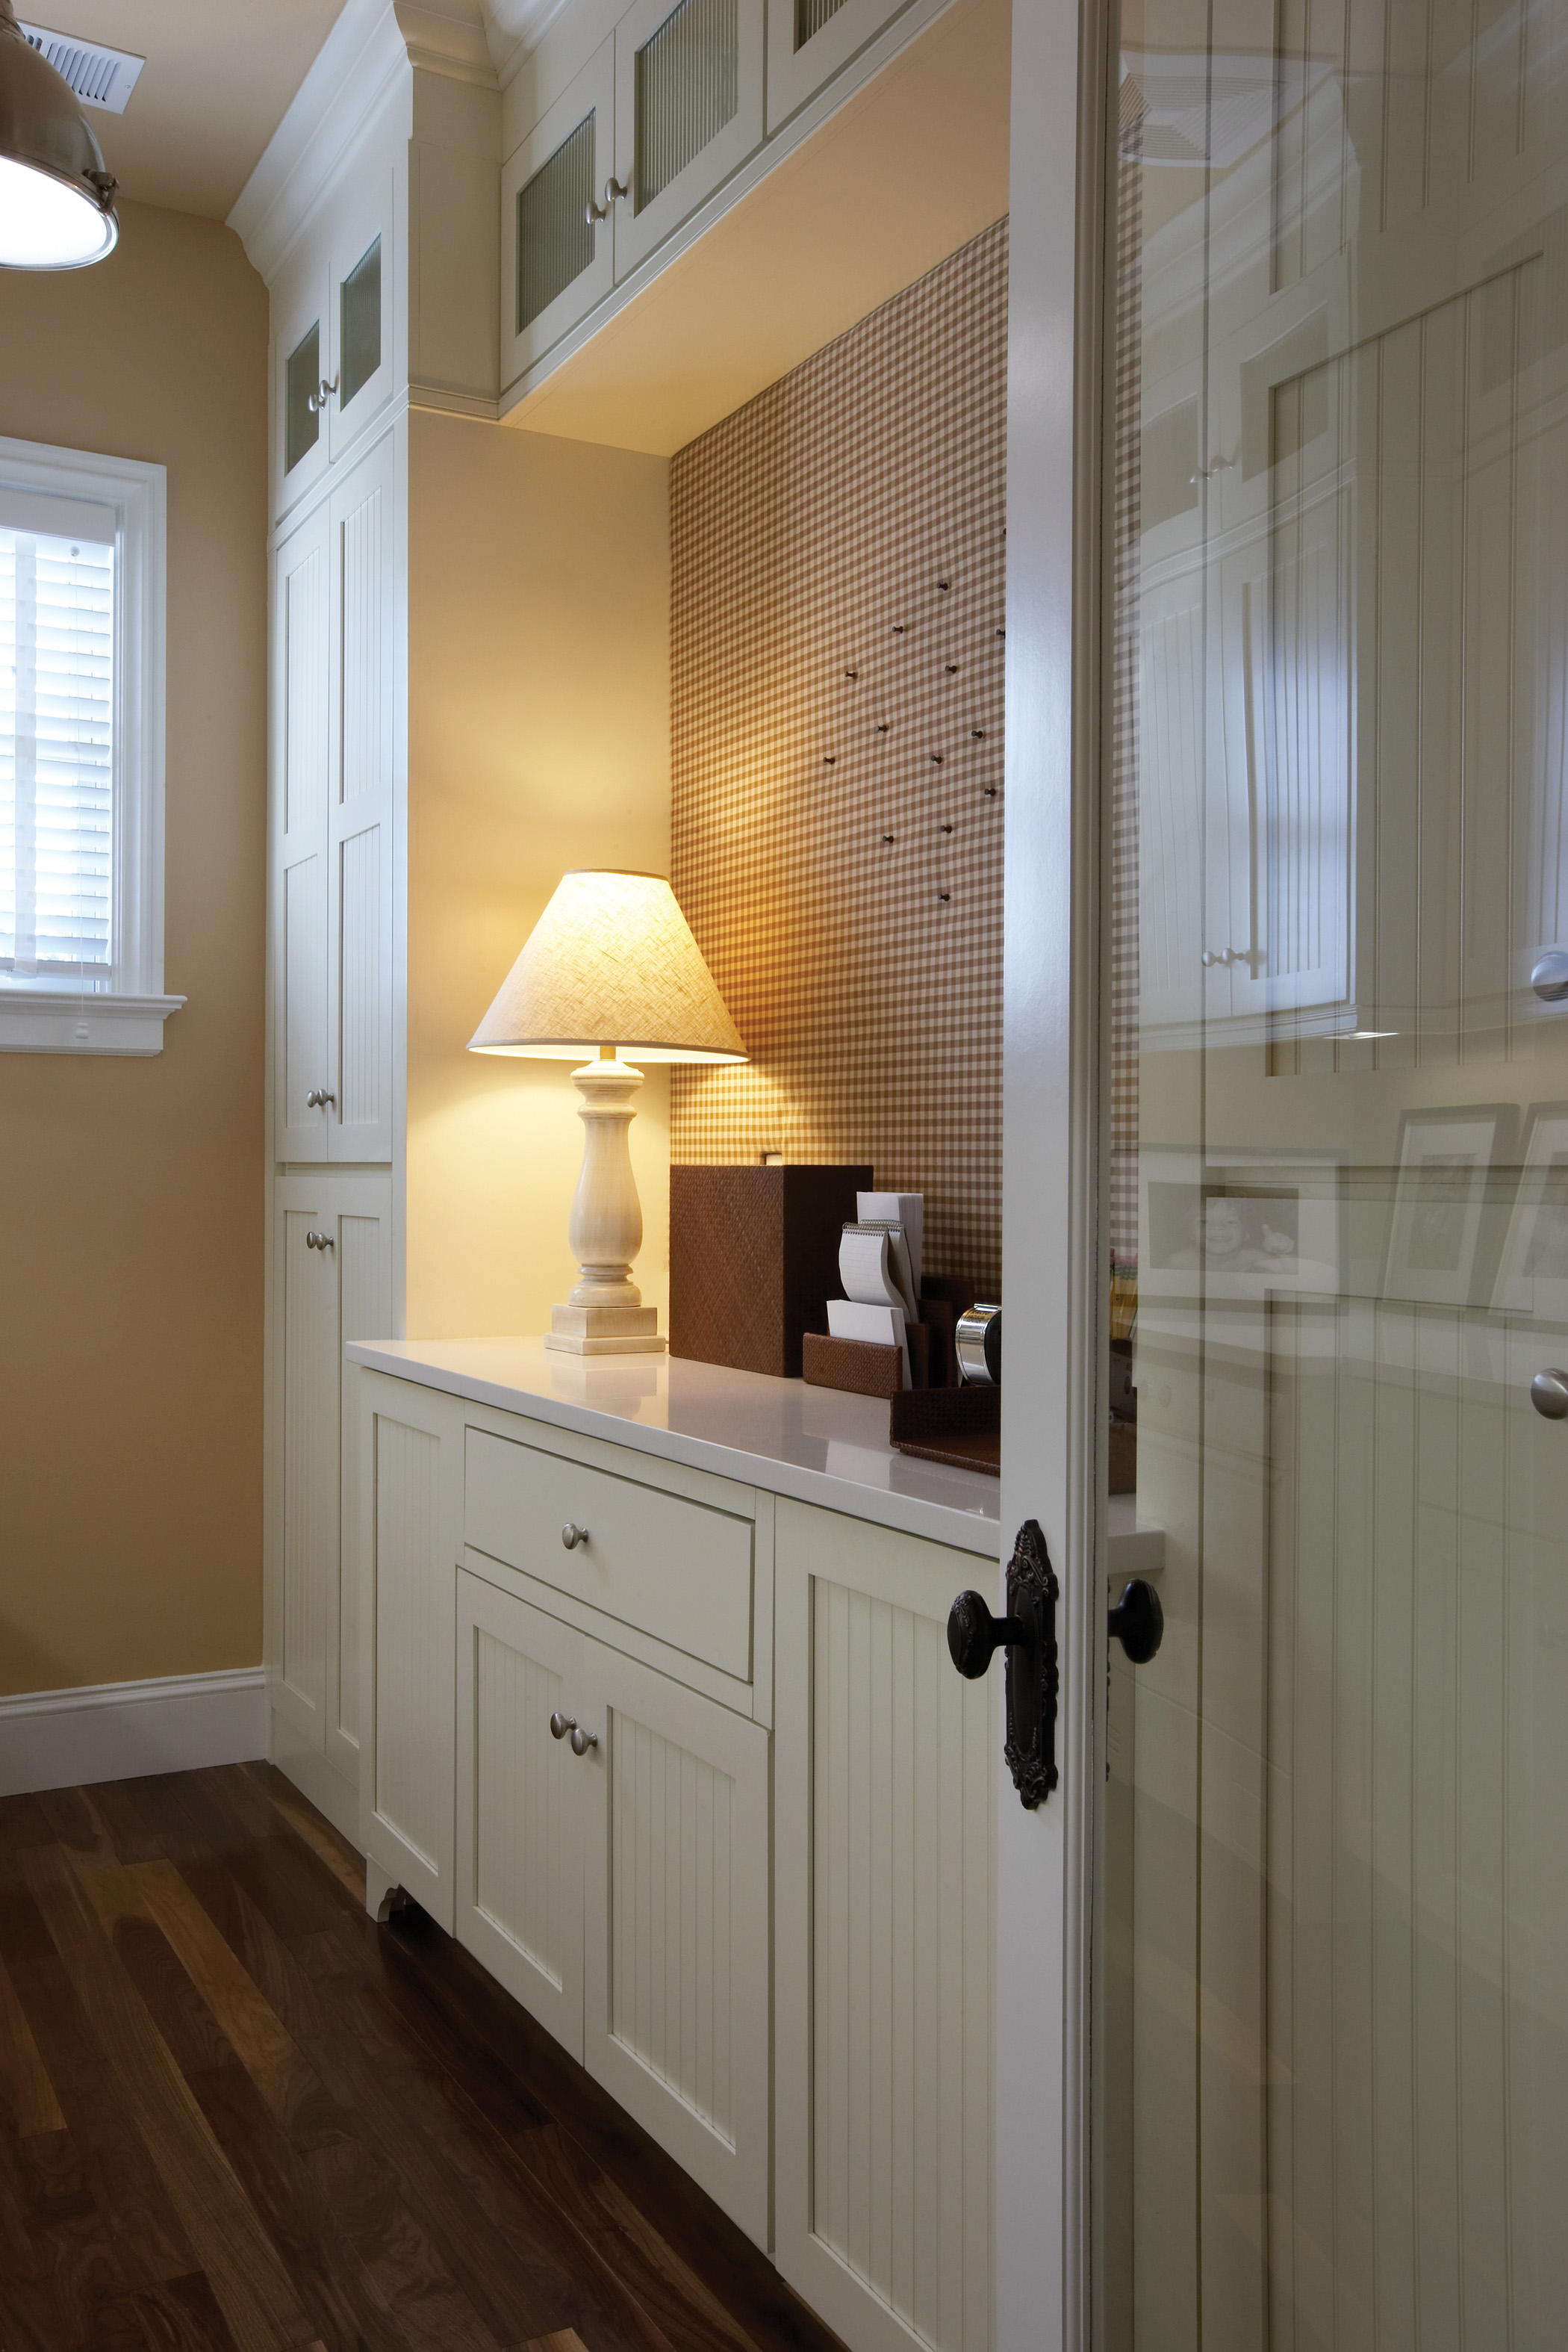 Closet and Storage Design and Cabinetry